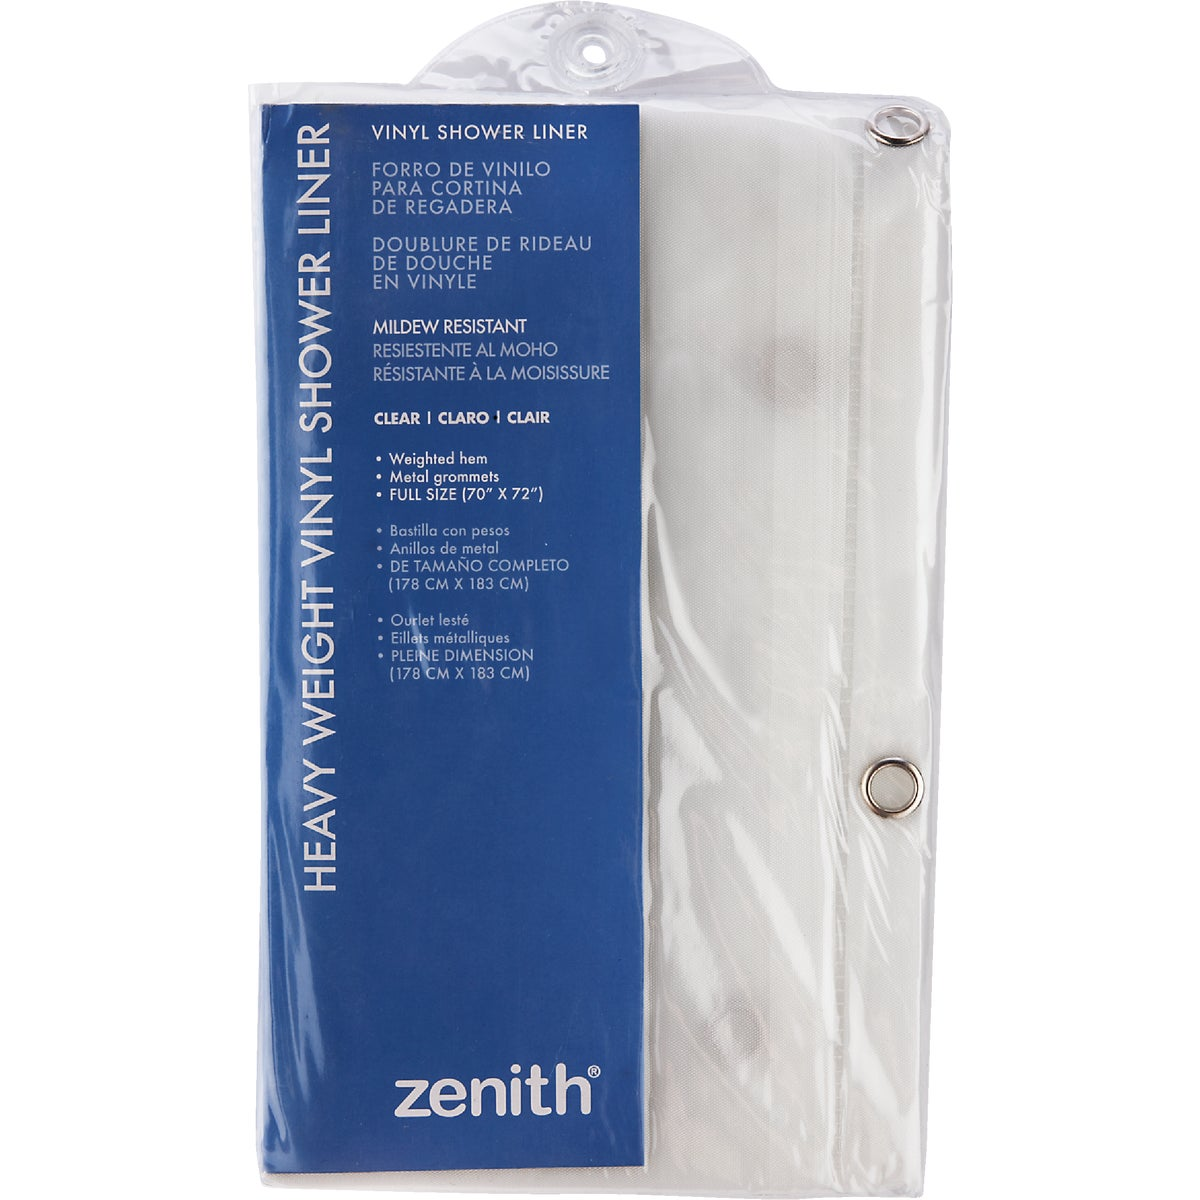 CLR SHOWER CURTAIN/LNR - H28K by Zenith Prod Corp